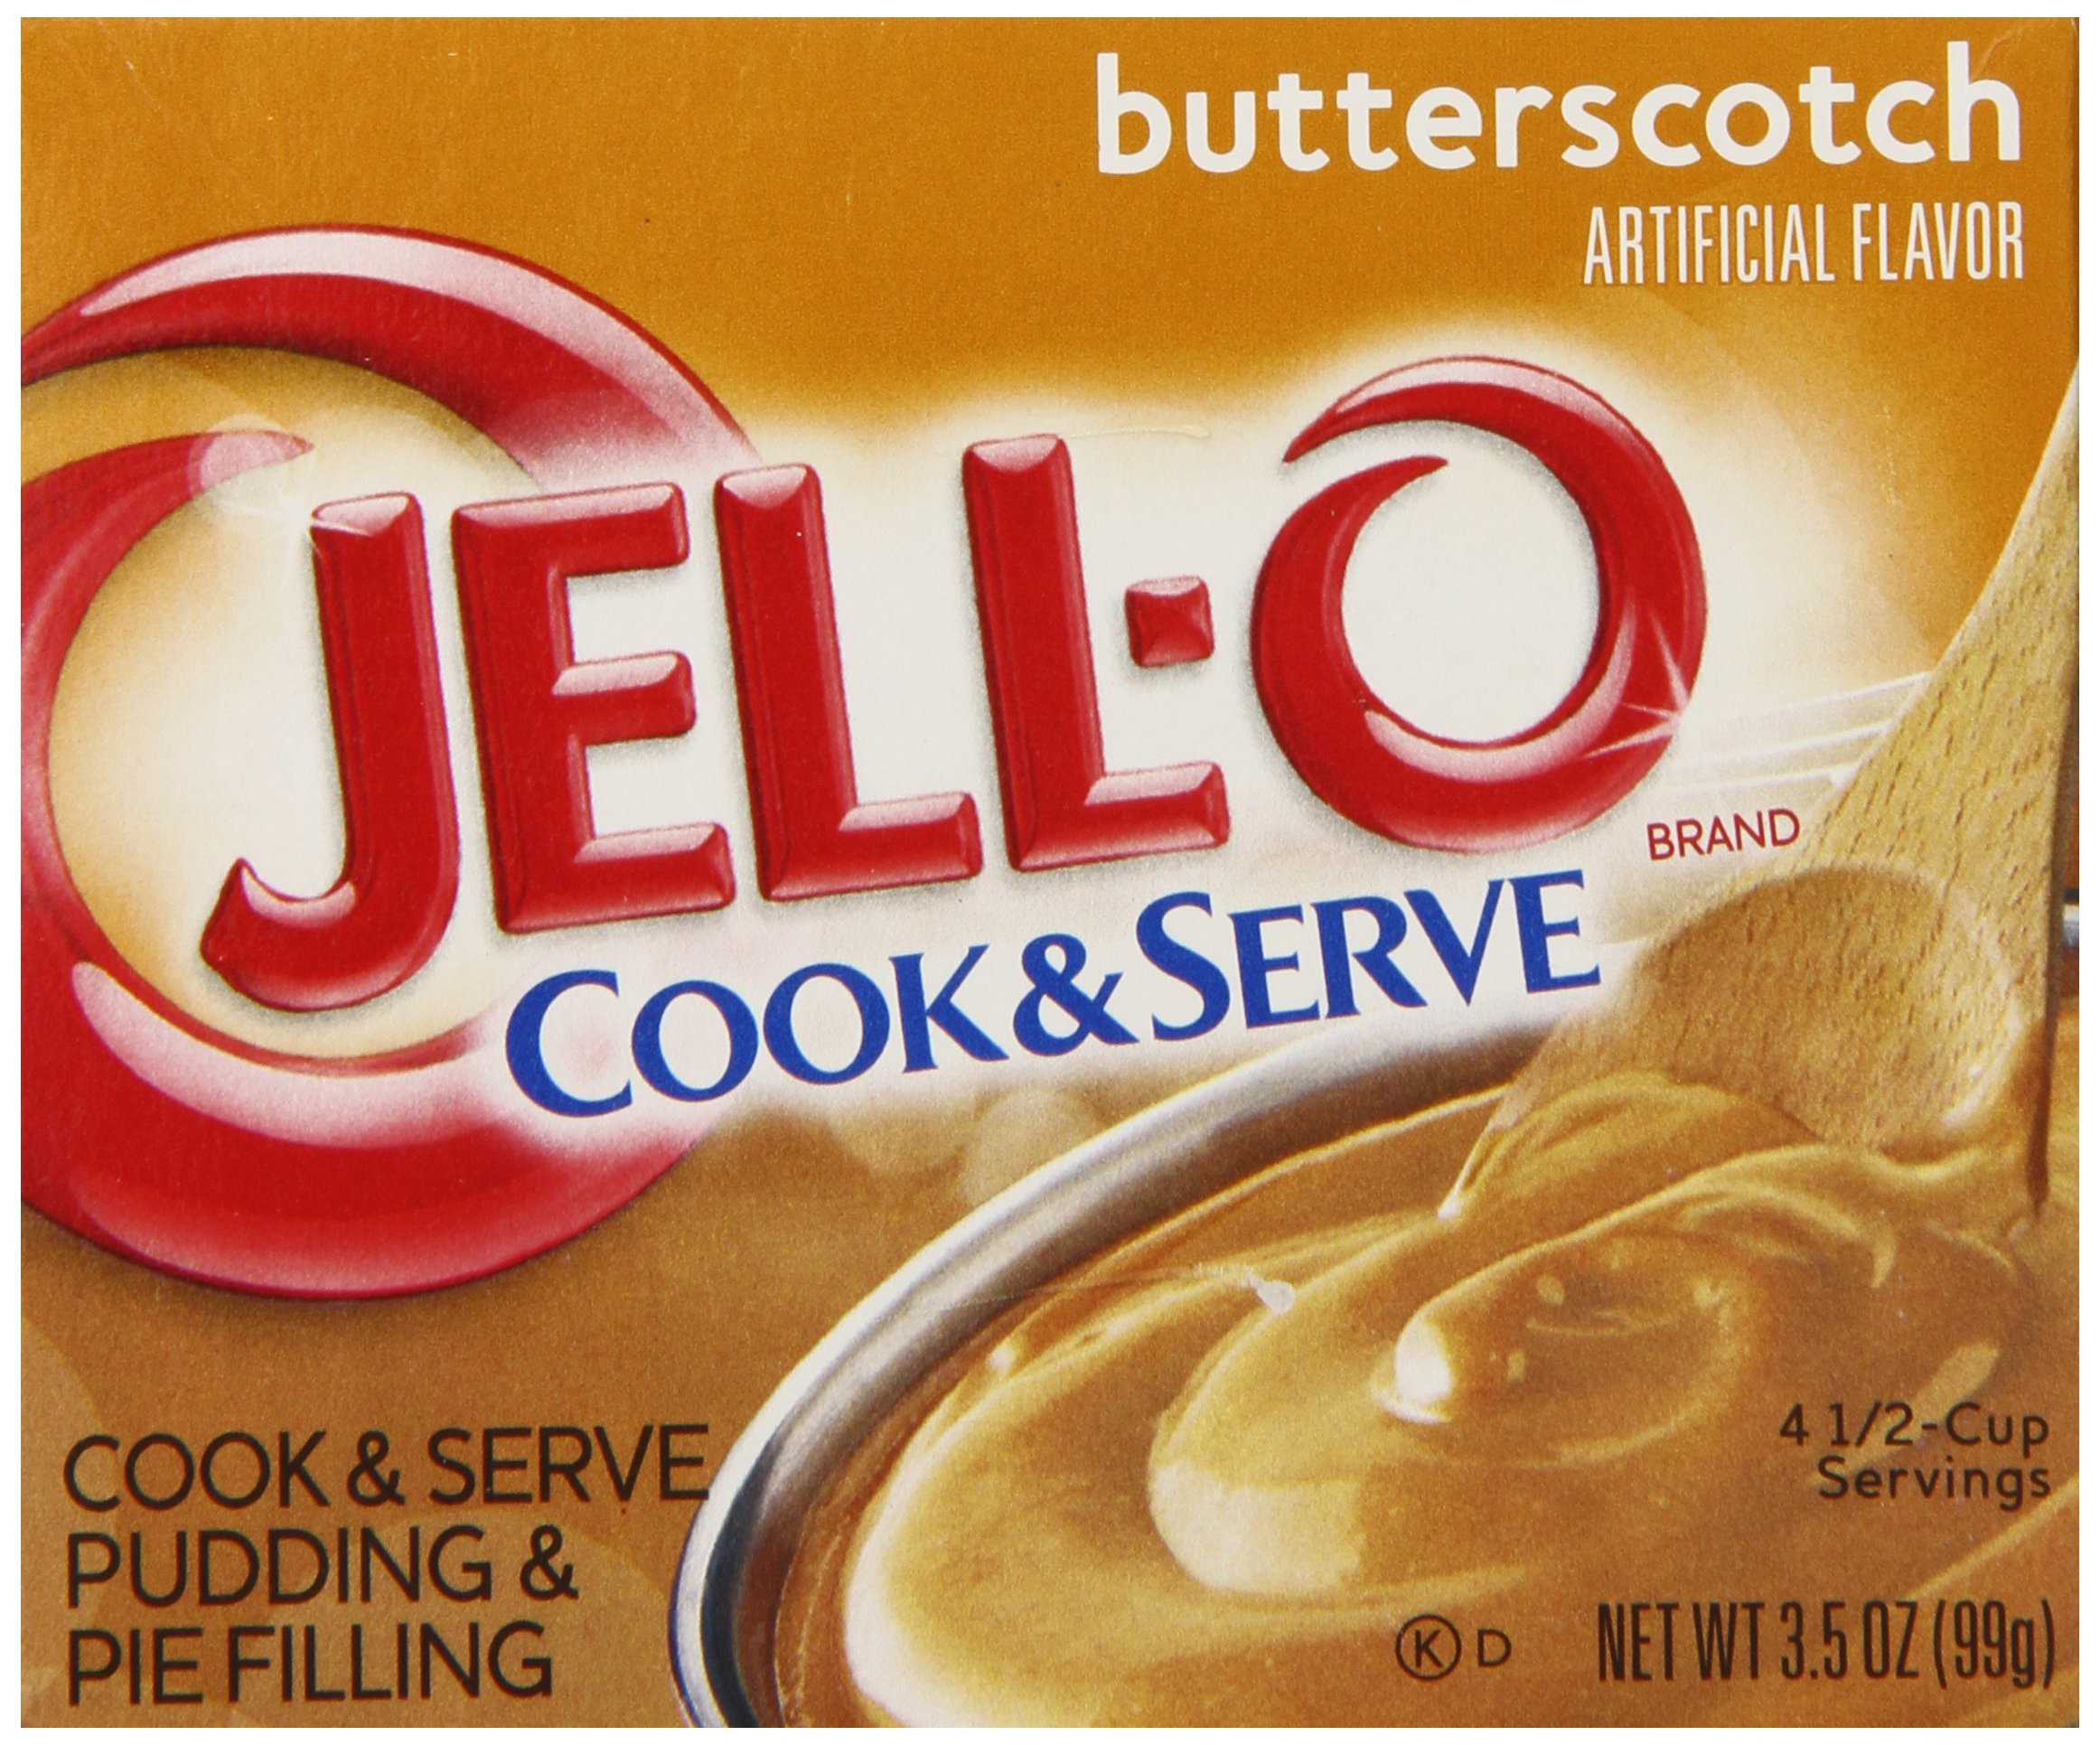 Jell-O Cook and Serve Pudding and Pie Filling, Butterscotch, 3.5-Ounce Boxes (Pack of 6)